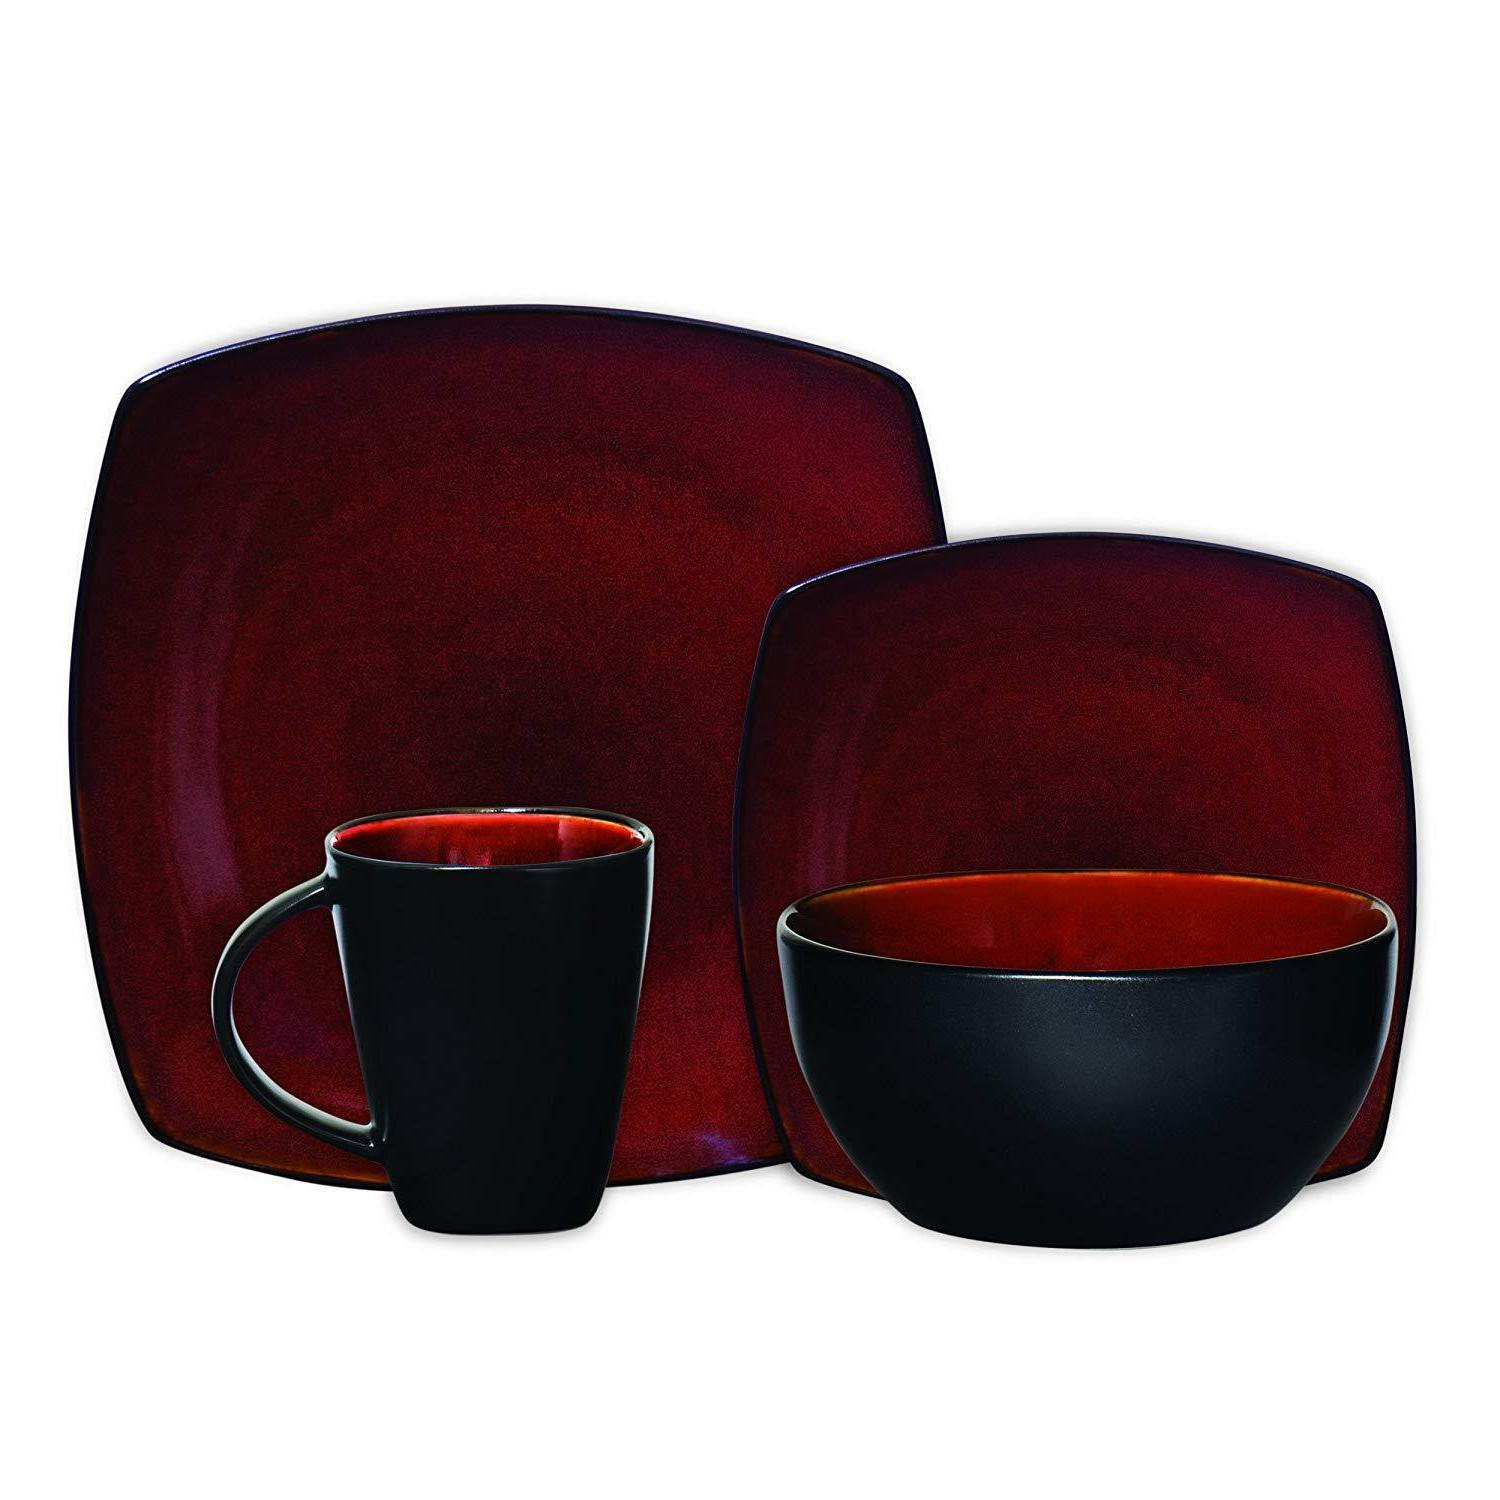 Dinnerware Square Plates For 16 Pieces